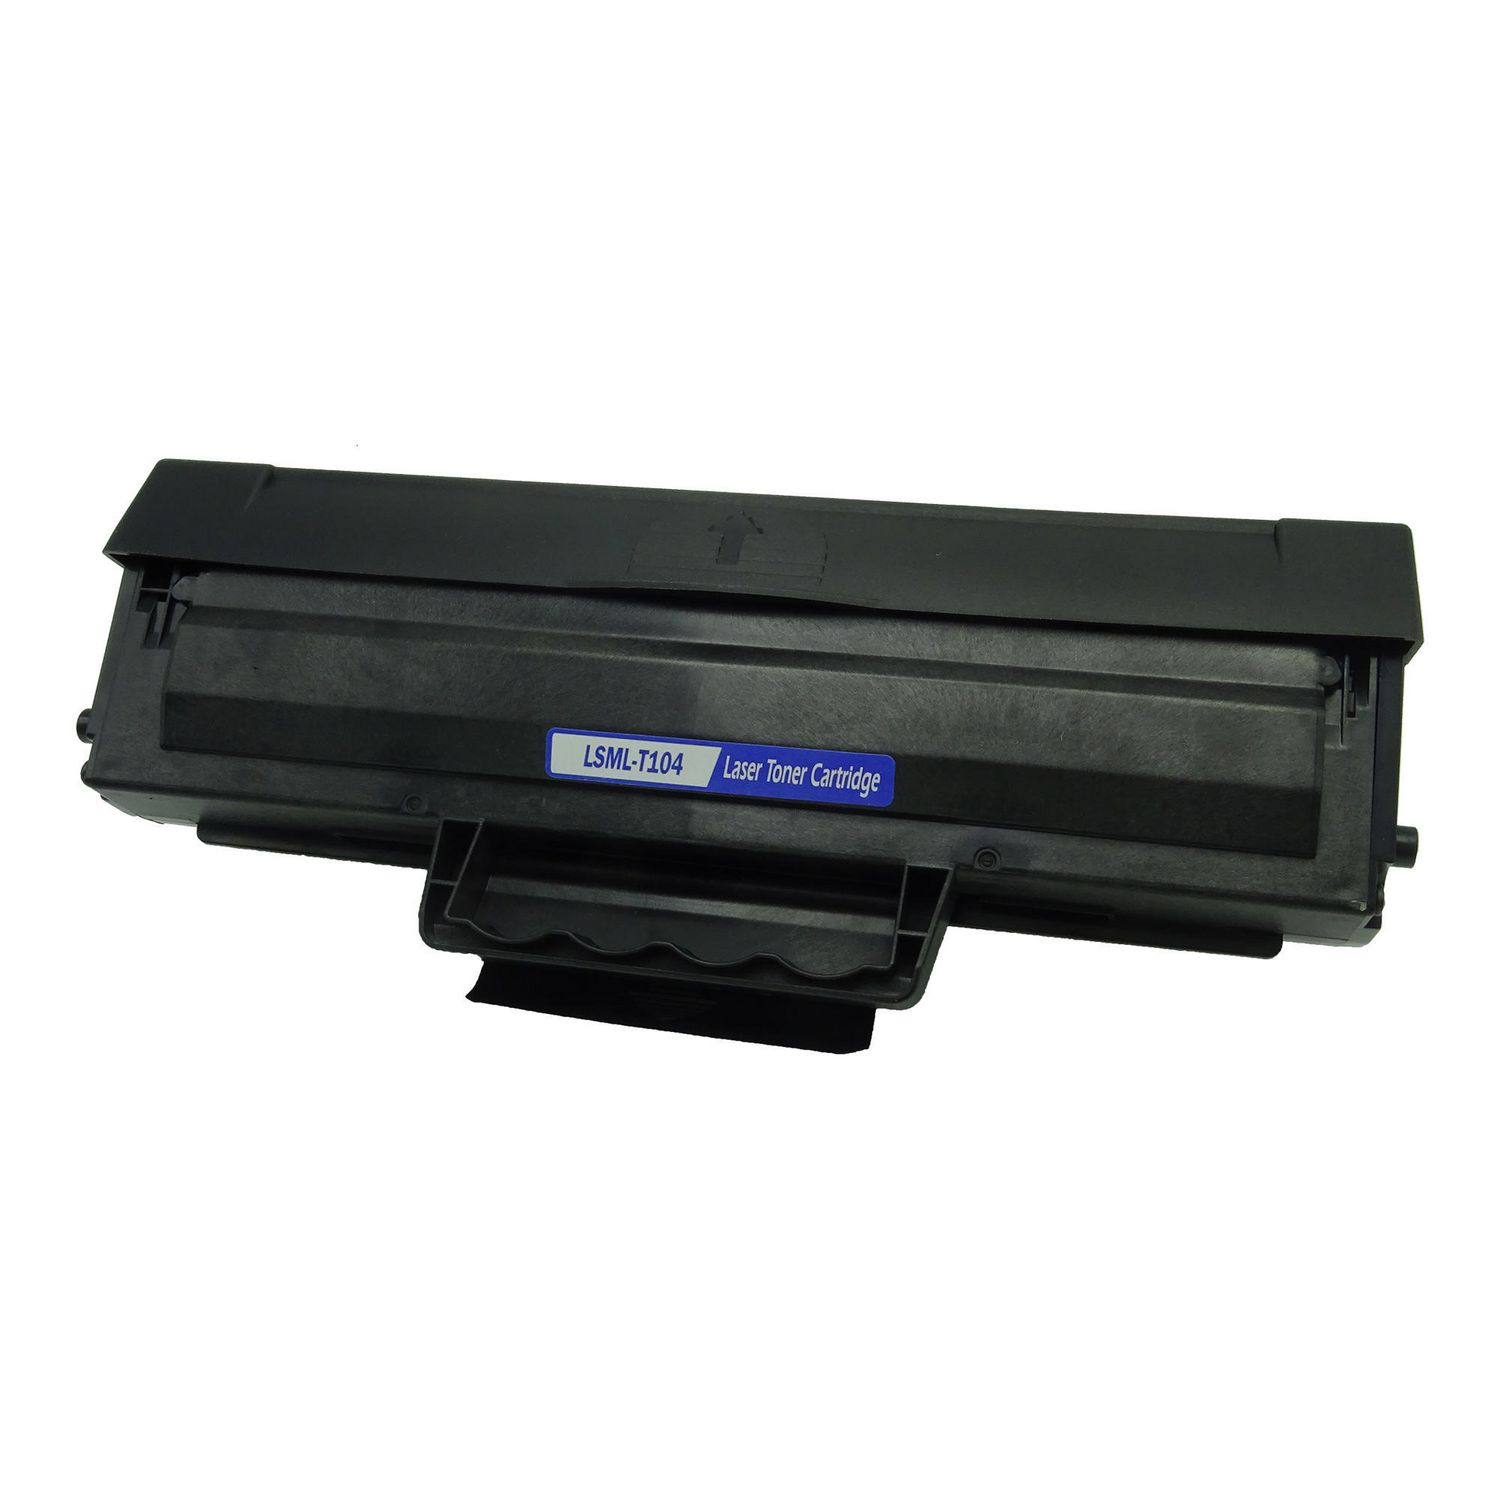 Toner Cartridge Compatible Samsung MLT-D104S (D104S) Black